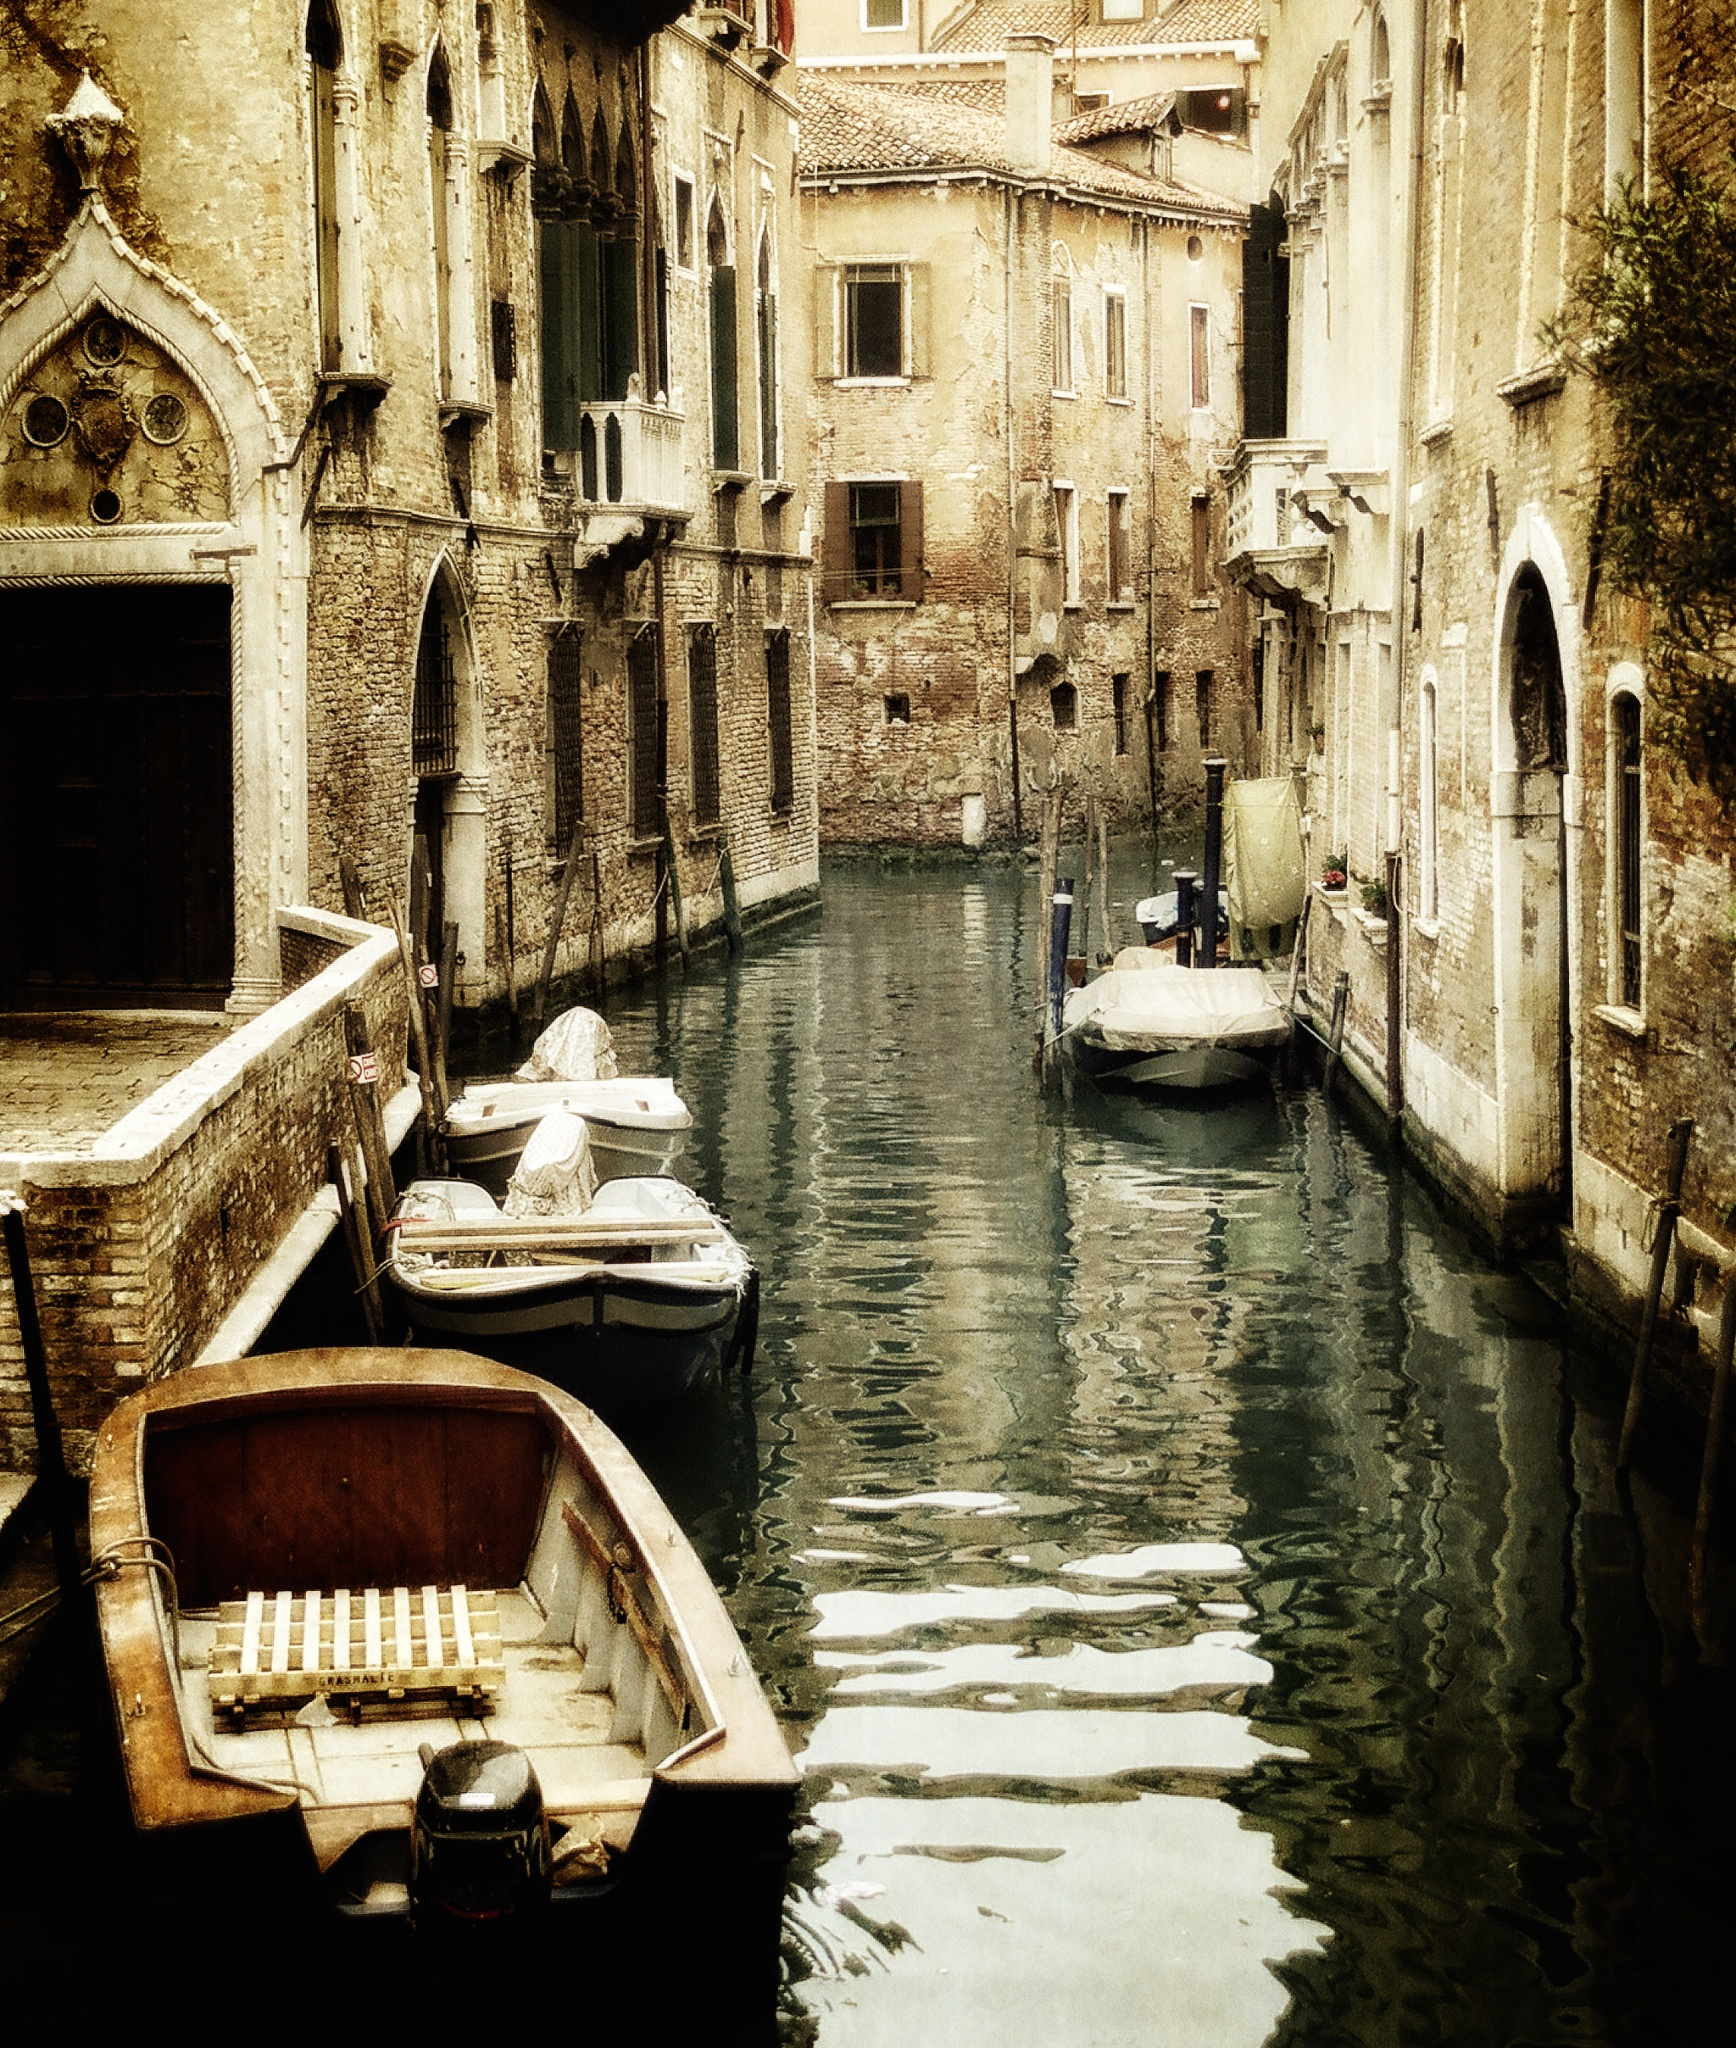 Boats In A Canal, Venice, Italy